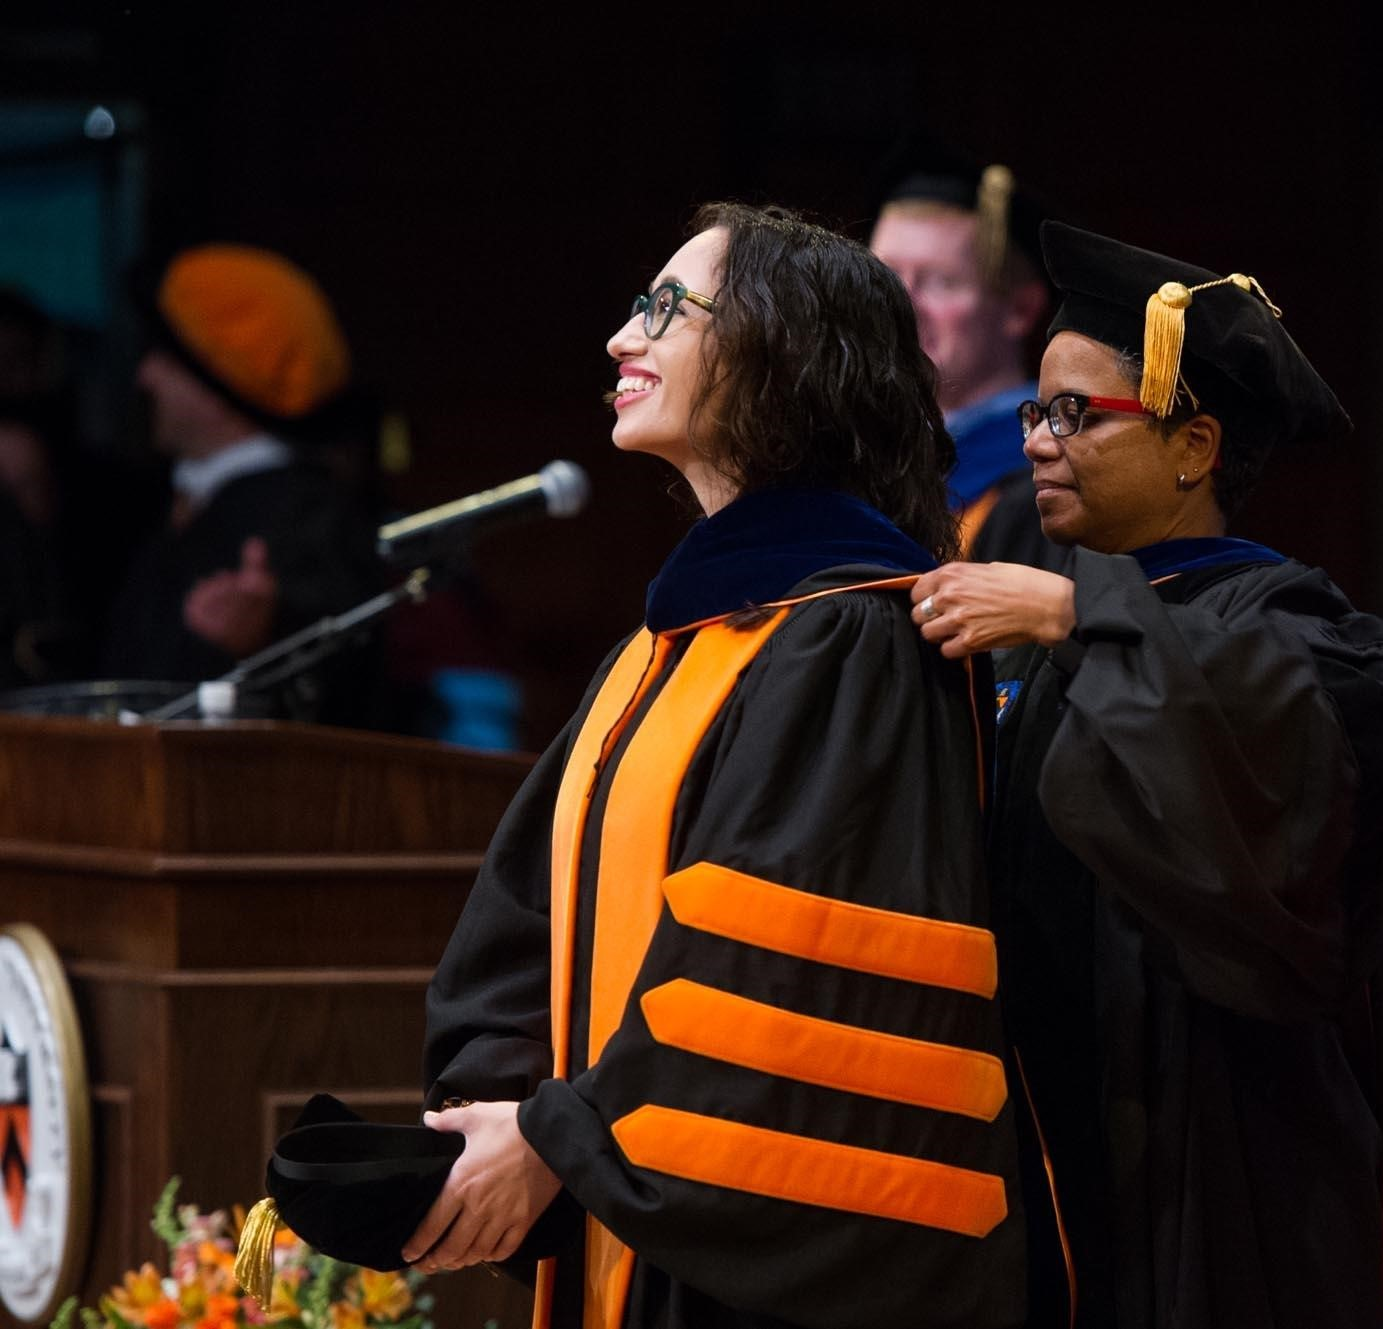 Stories of Traditions at Princeton - Hooding